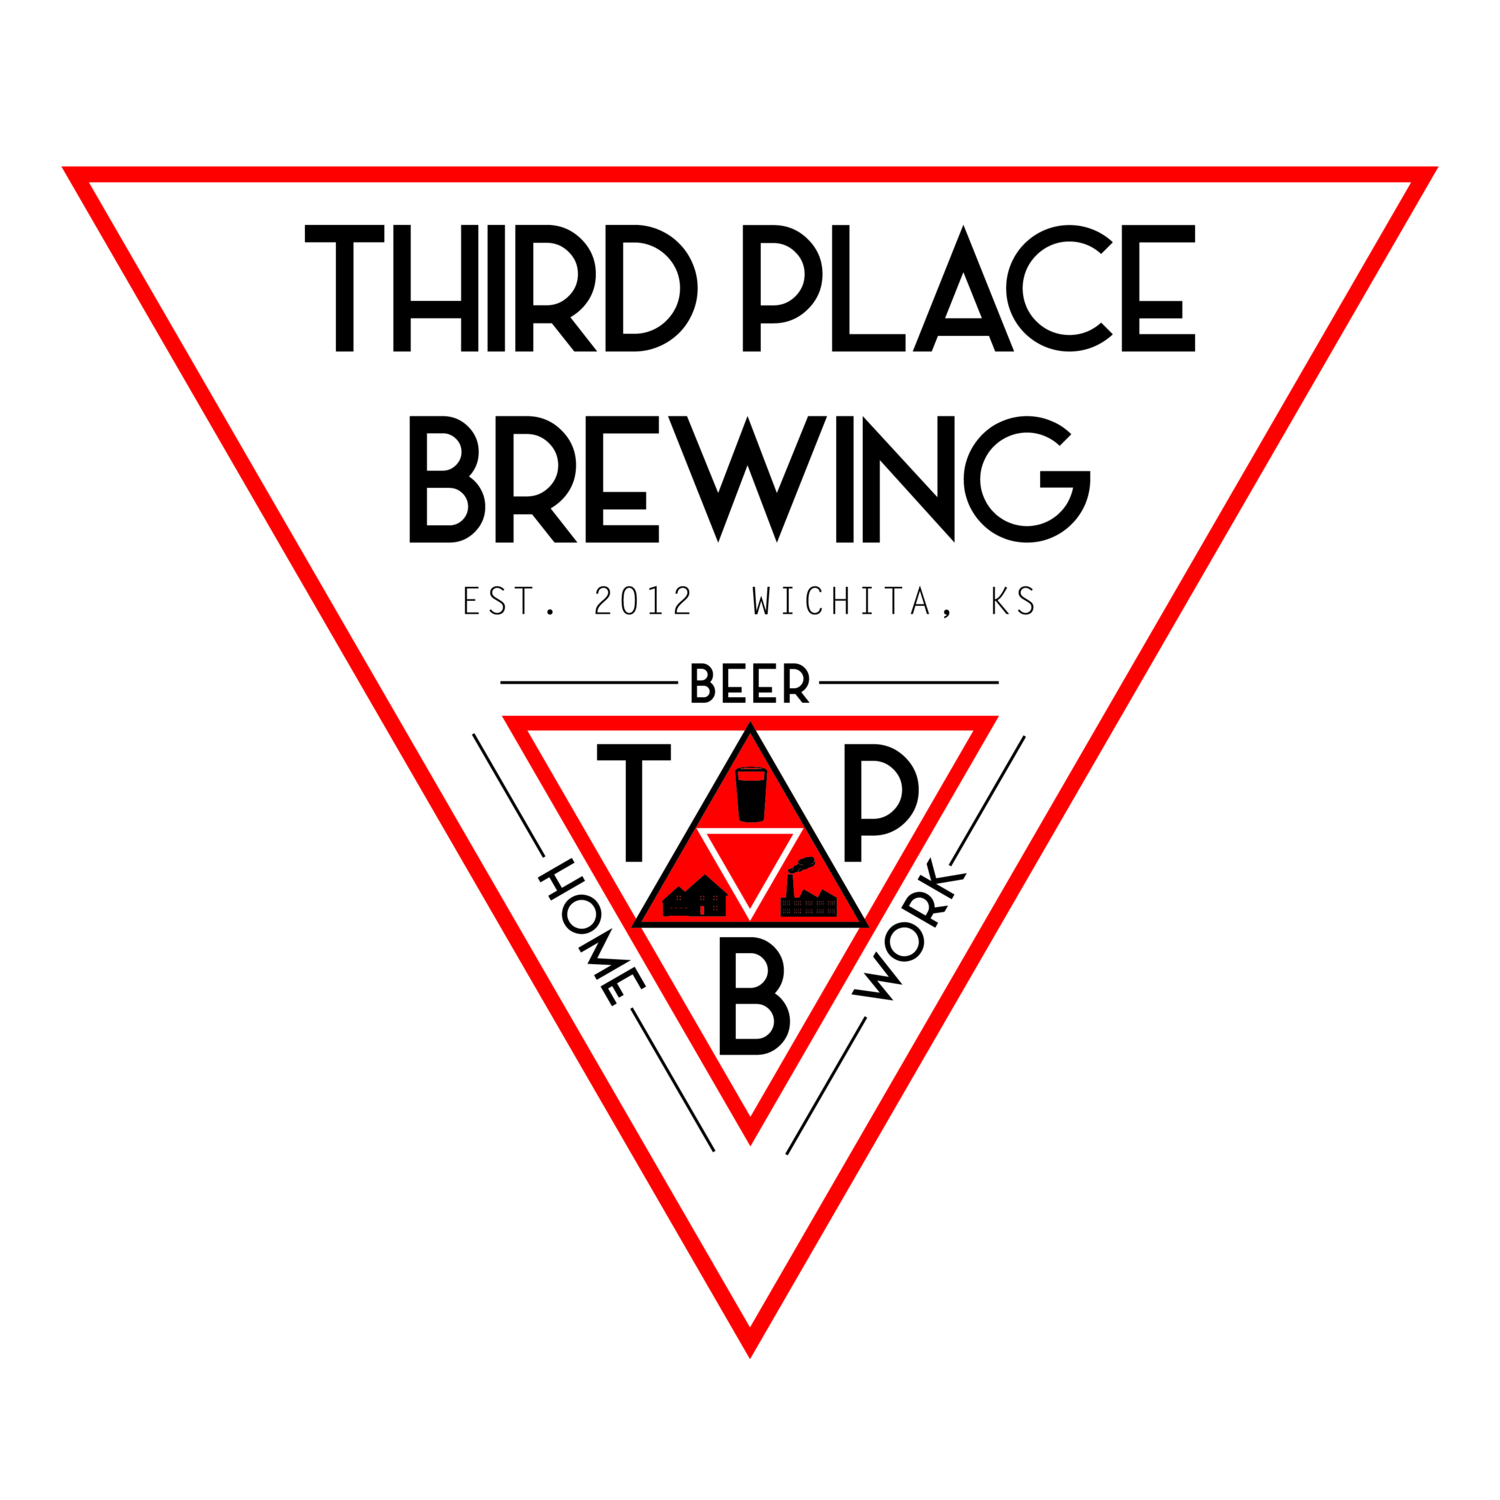 Third Place Brewing